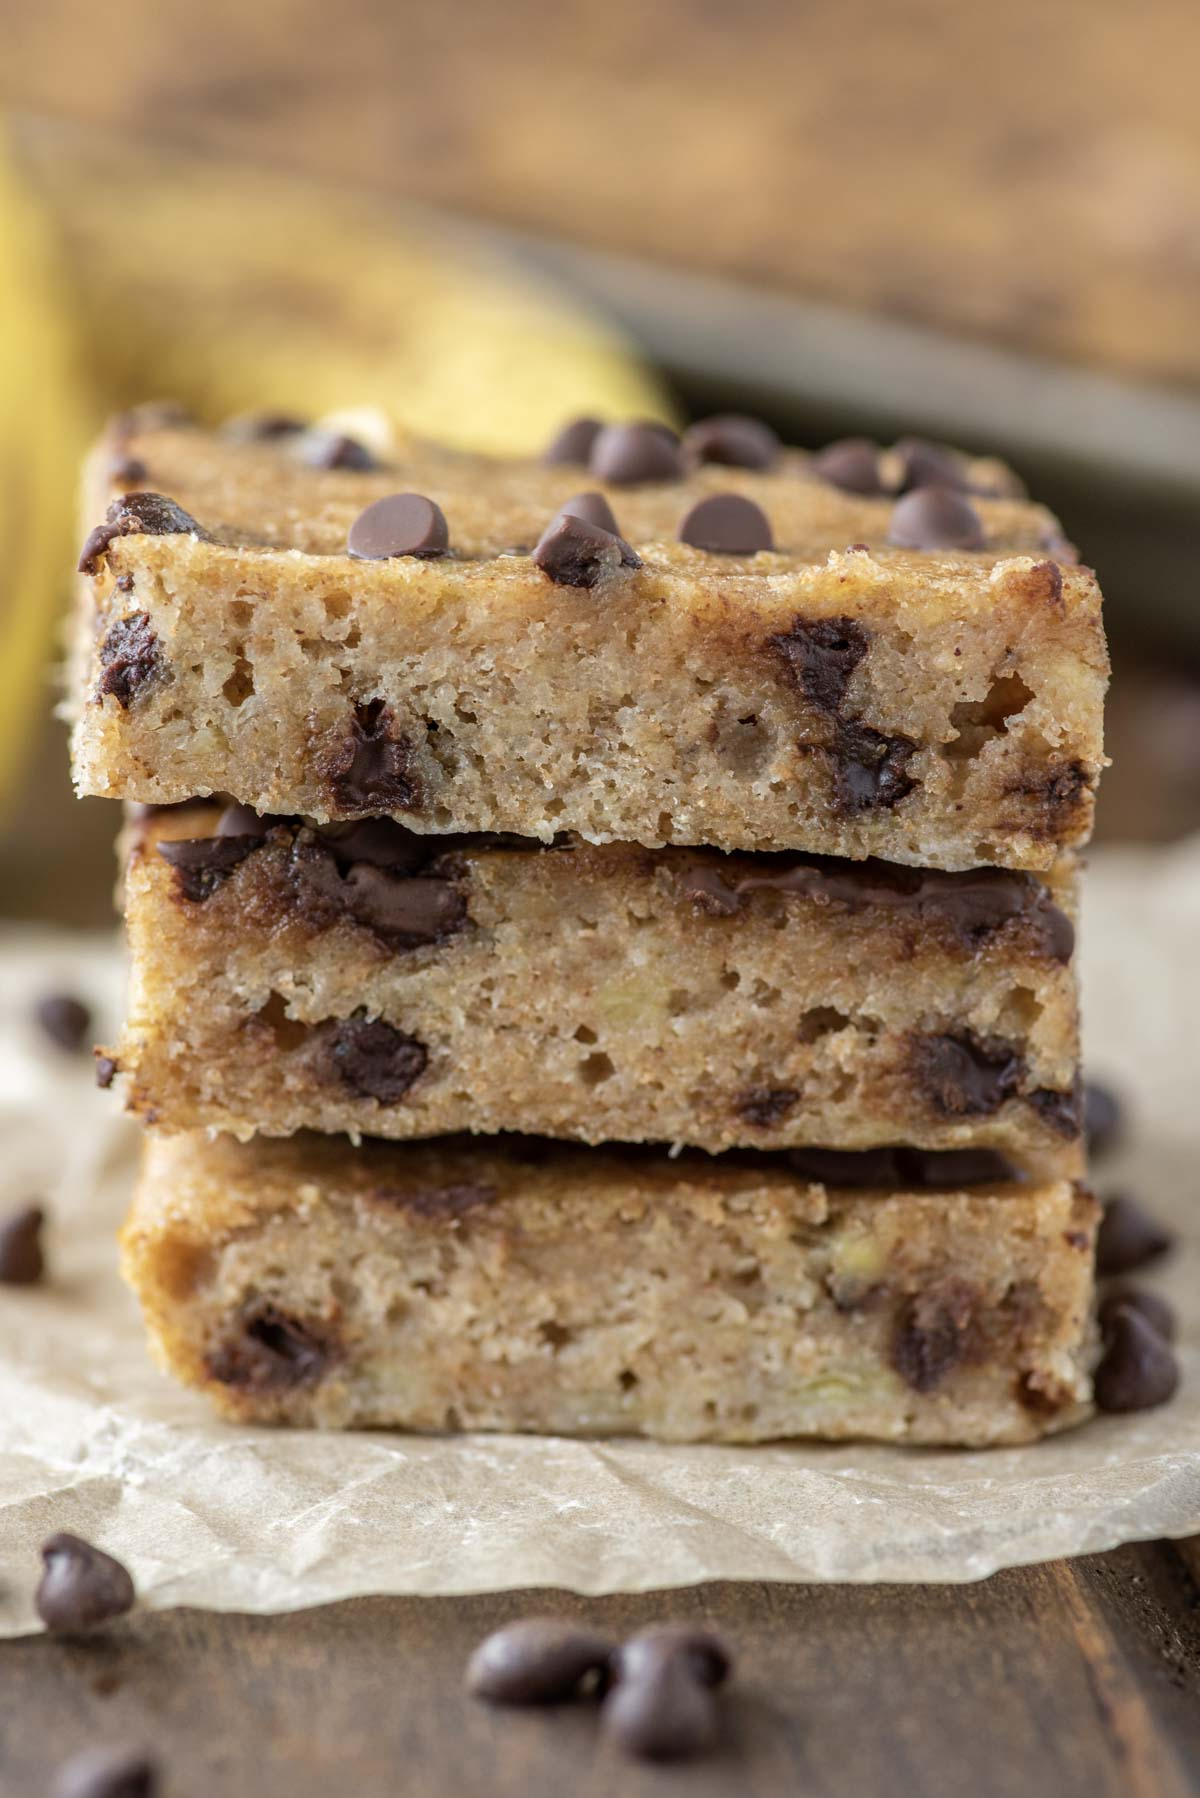 3 stacked chocolate chip banana bars on parchment paper